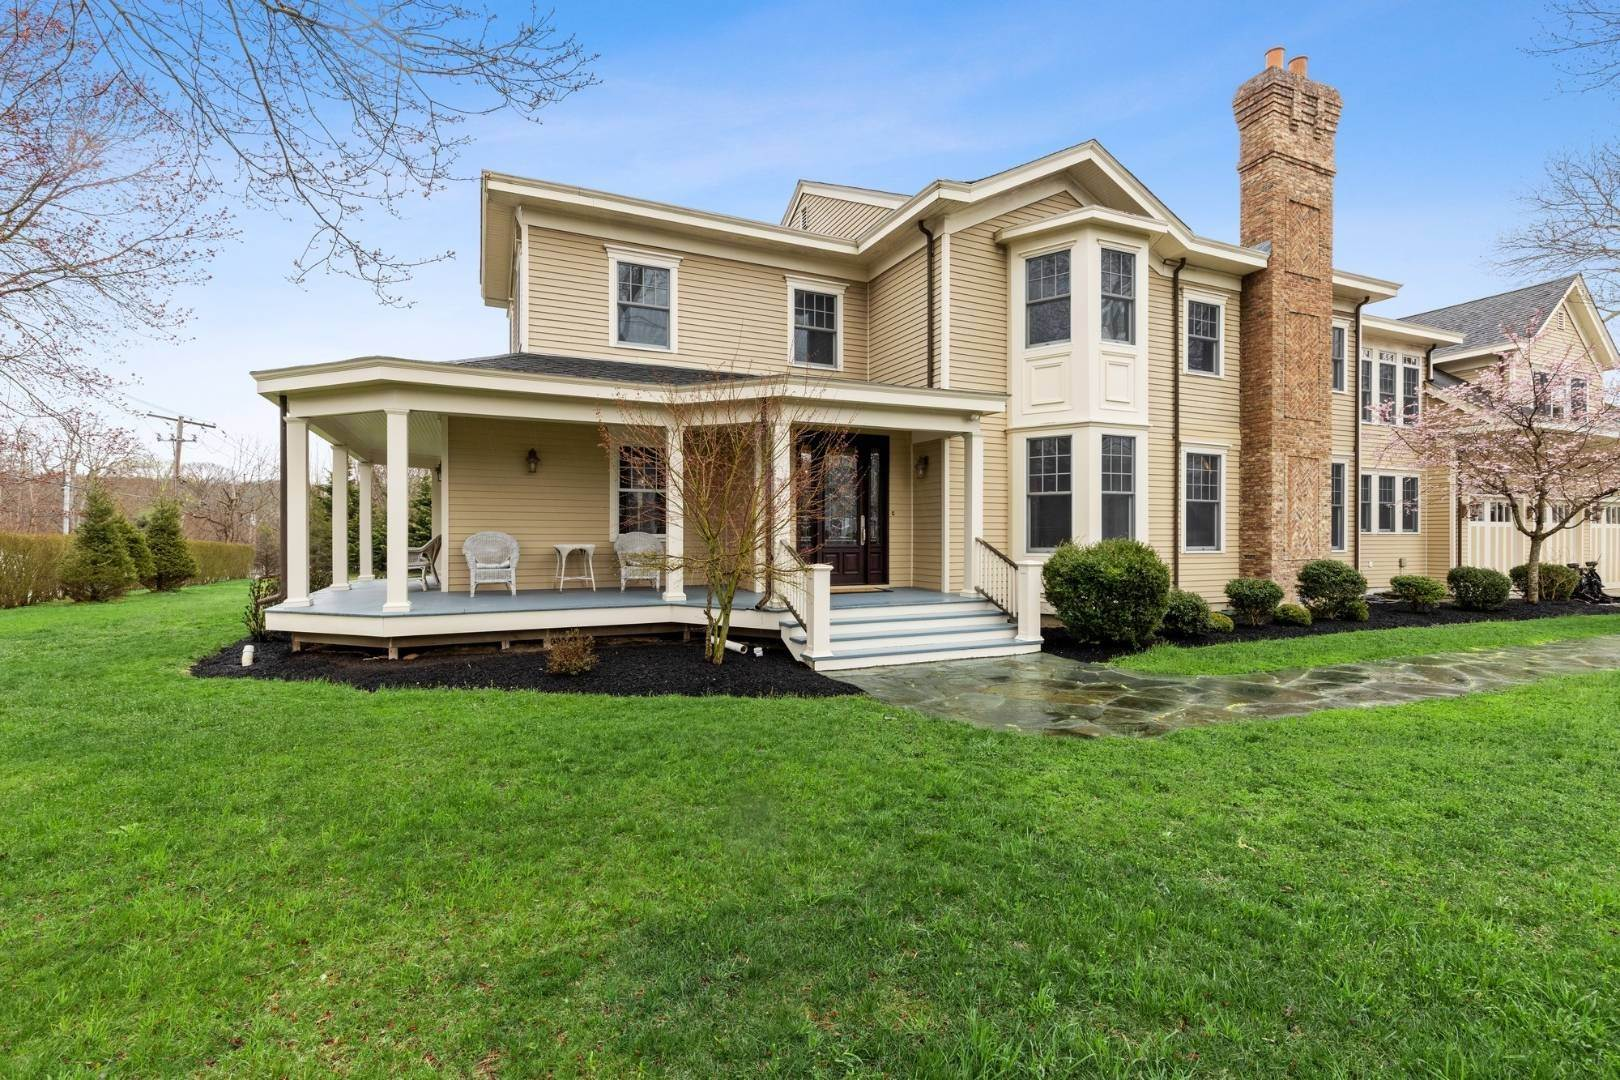 Single Family Home por un Venta en A Divine Victorian For The Modern Family - 1875 To 2021 52 Brushy Neck Ln, Westhampton, NY 11977